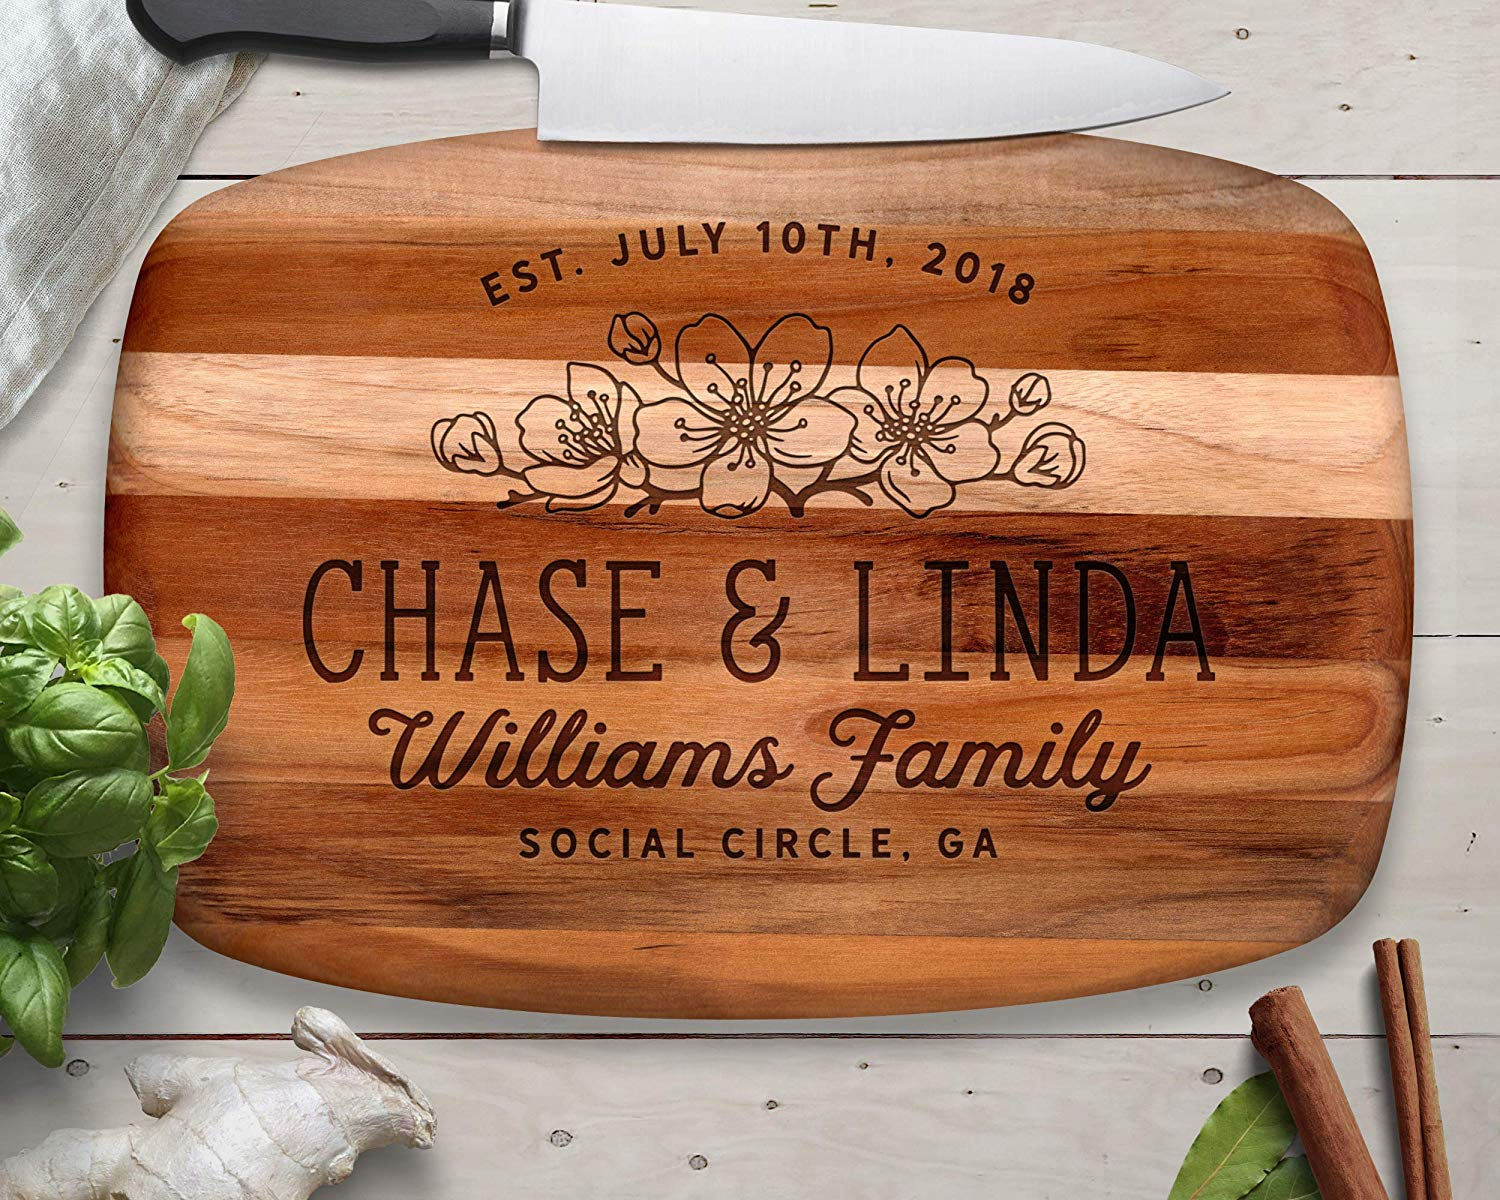 Flower Decor, Cheese board, Teak, Cutting Board, Custom Cutting Board, Wood Cutting Board, Personalized Cutting Board, Serving Board, Personalized Gift, Wedding Gift, Anniversary Gift, Christmas